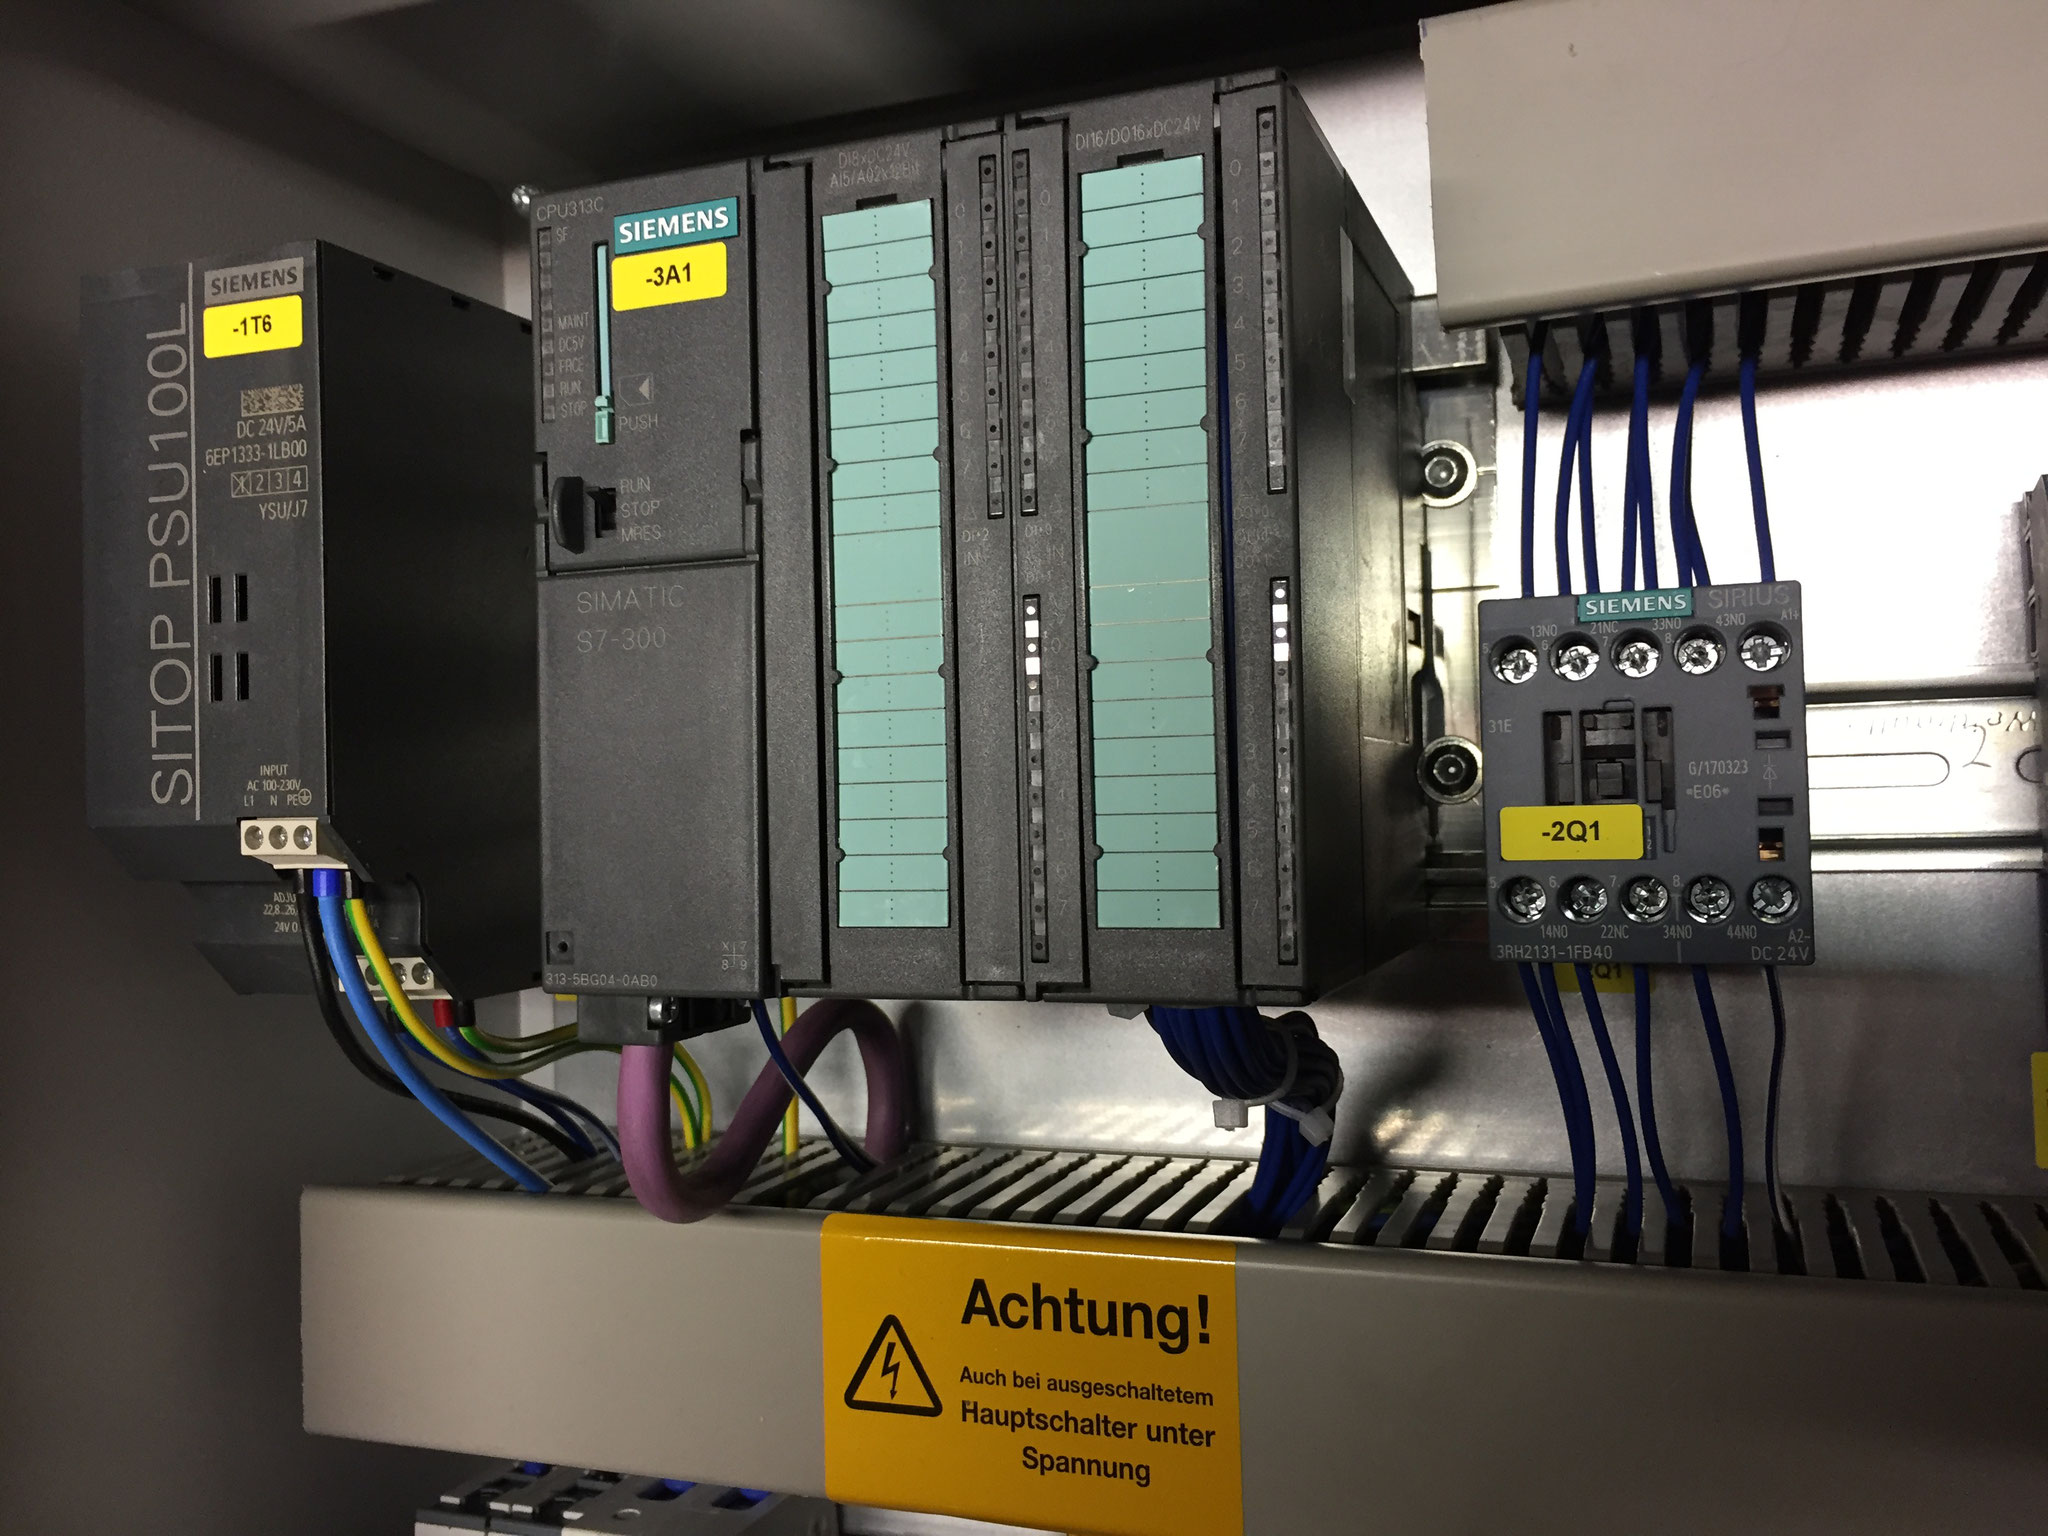 Control cabinet with Siemens S7 300